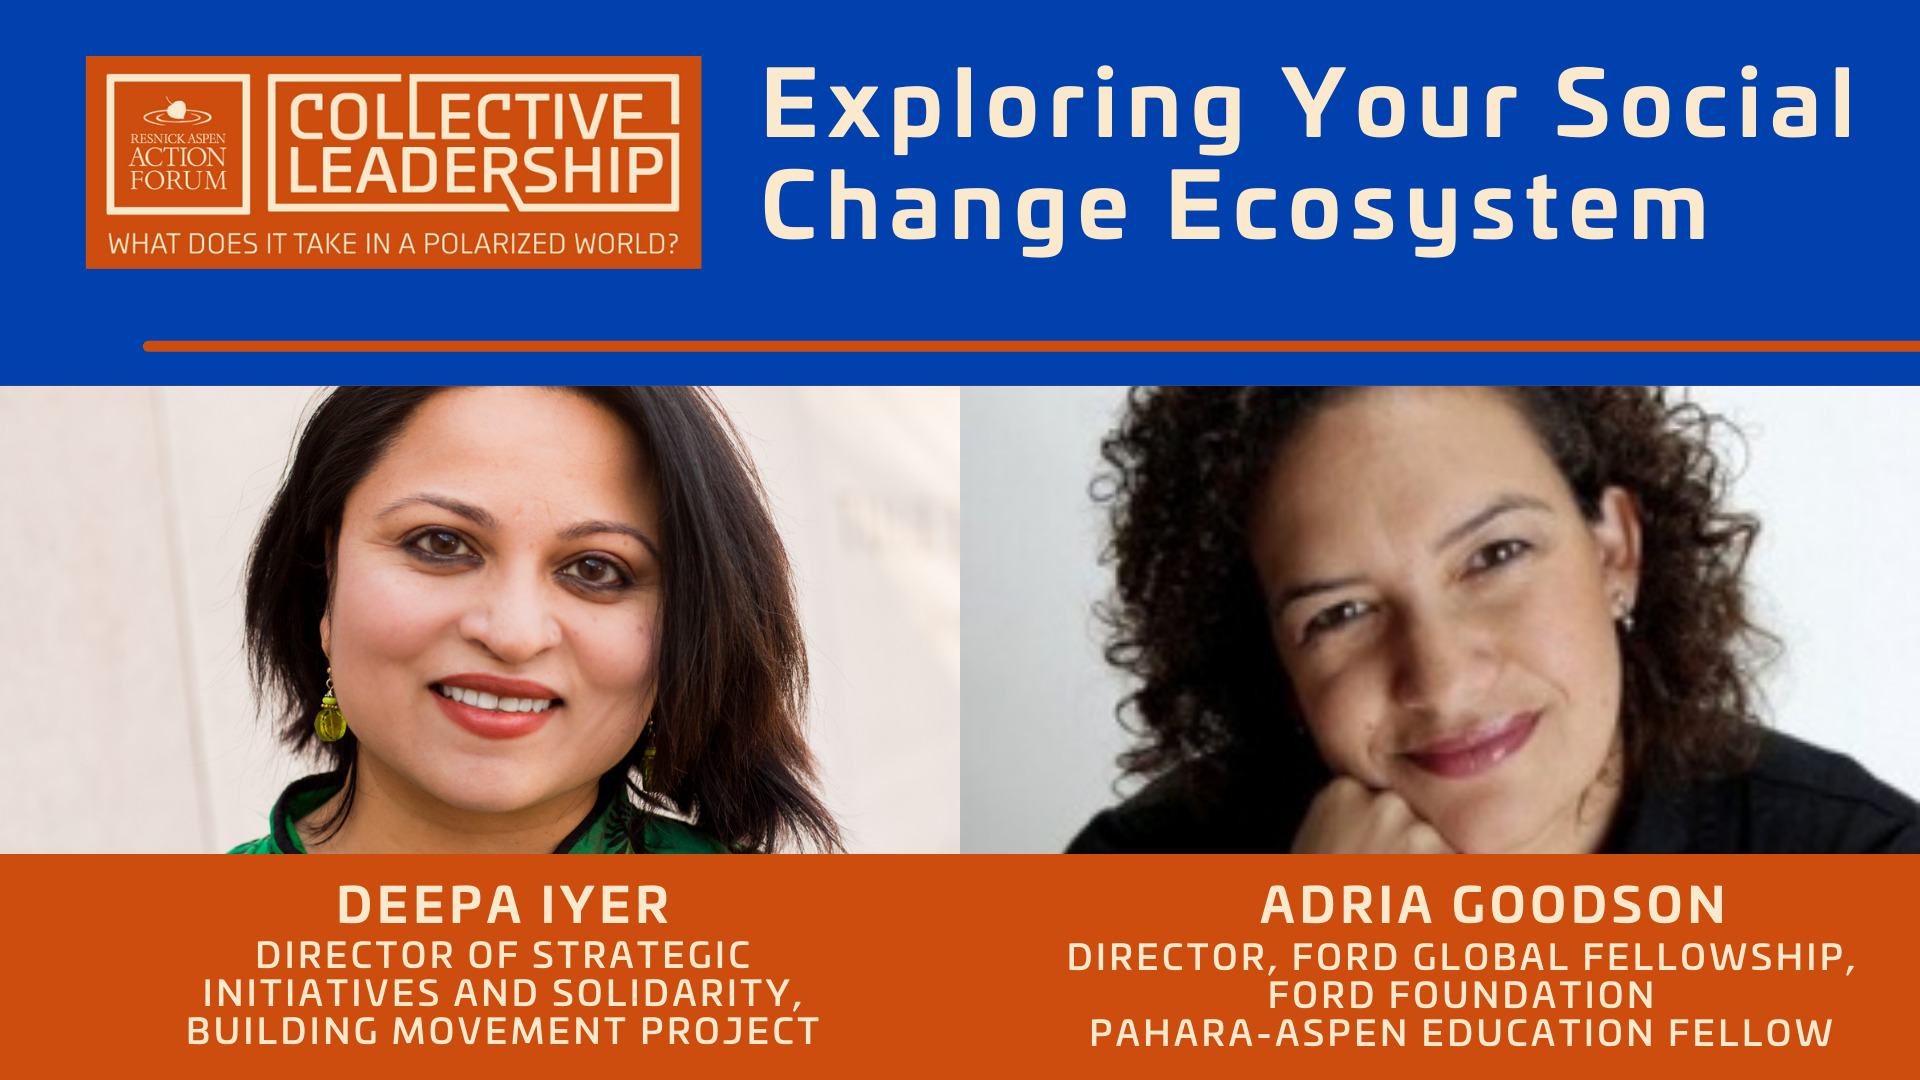 Exploring Your Social Change Ecosystem